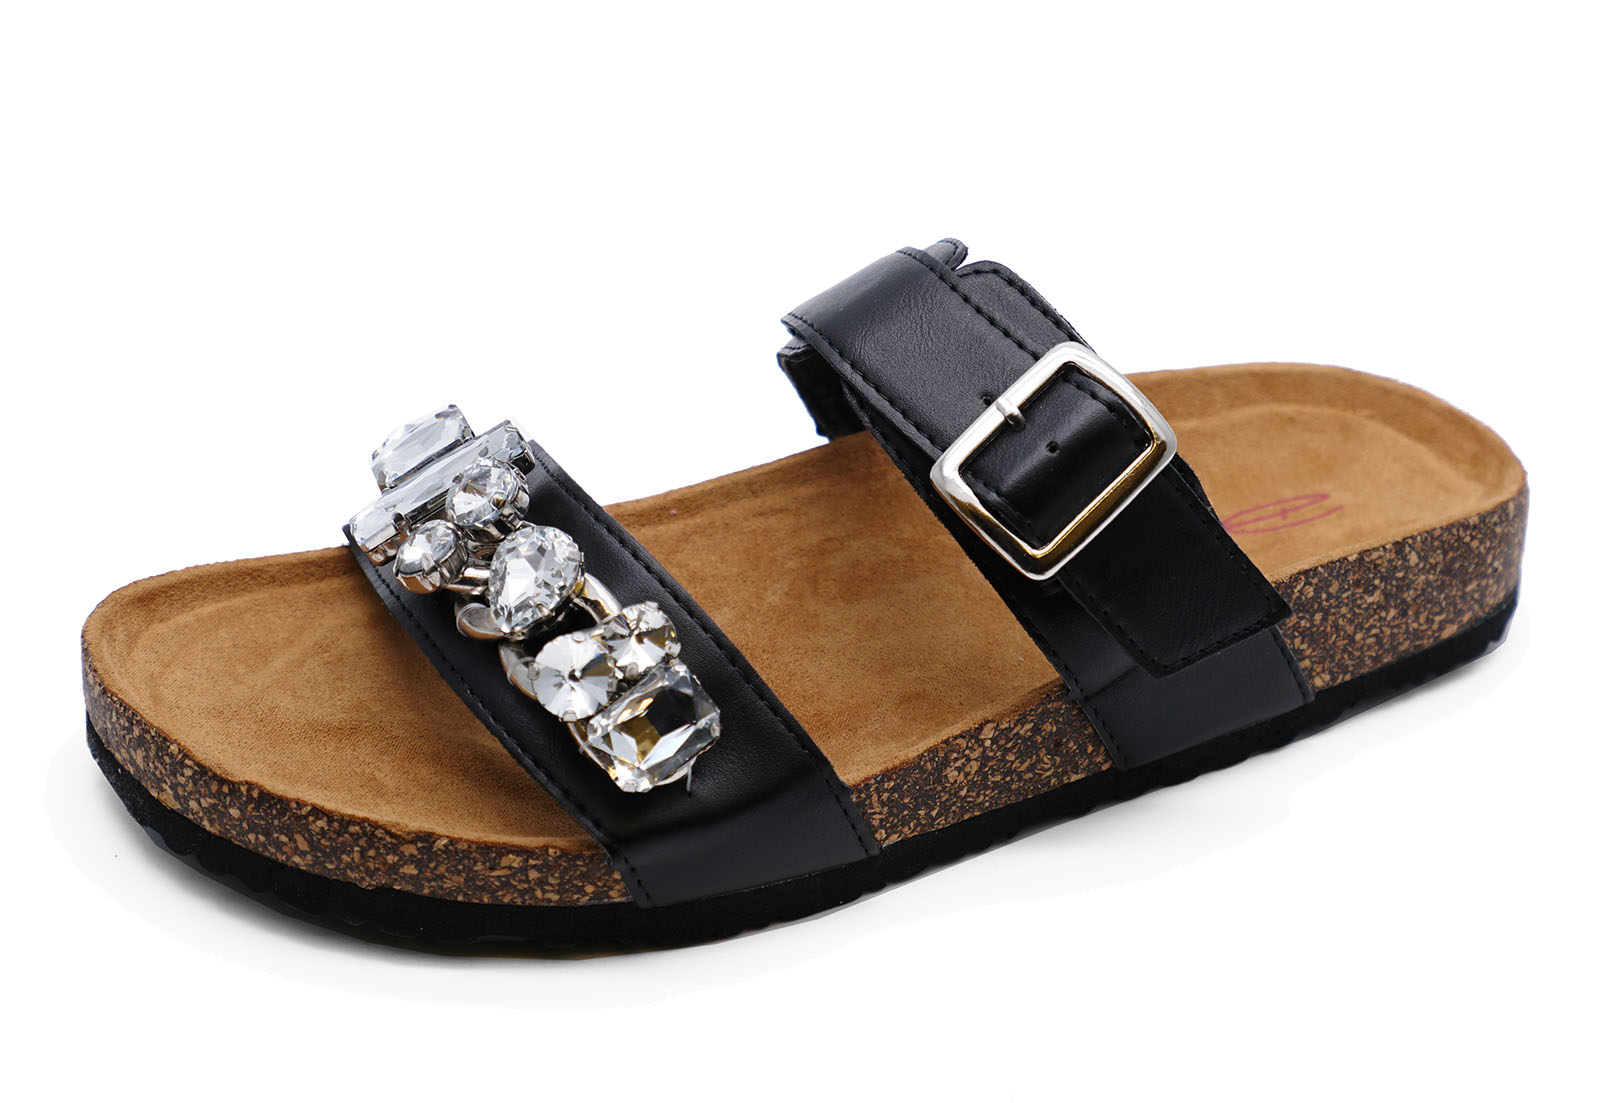 LADIES DOLCIS REESE BLACK FLAT COMFY WALKING SANDALS TOE-POST HOLIDAY SHOES 3-8